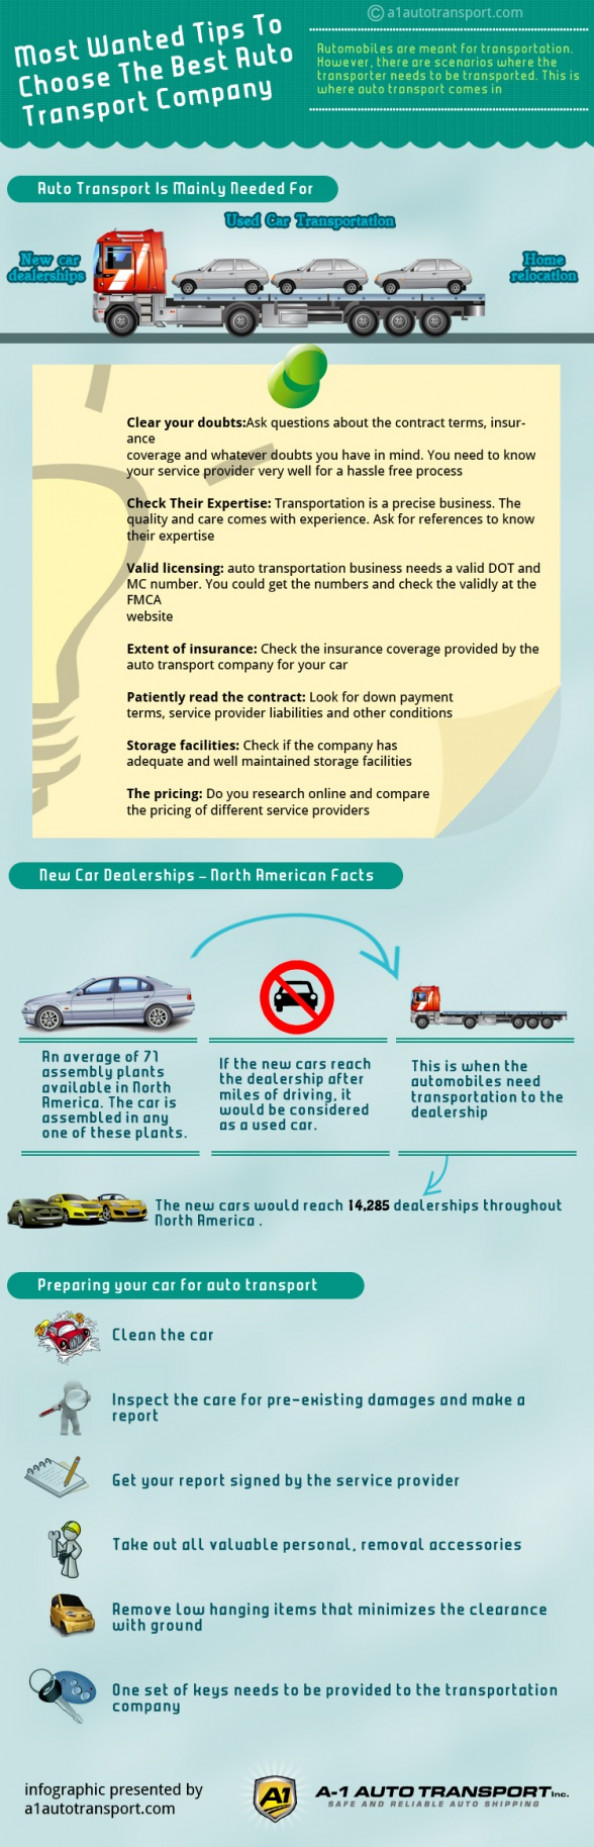 How To Choose The Best Auto Transport Company Infographic